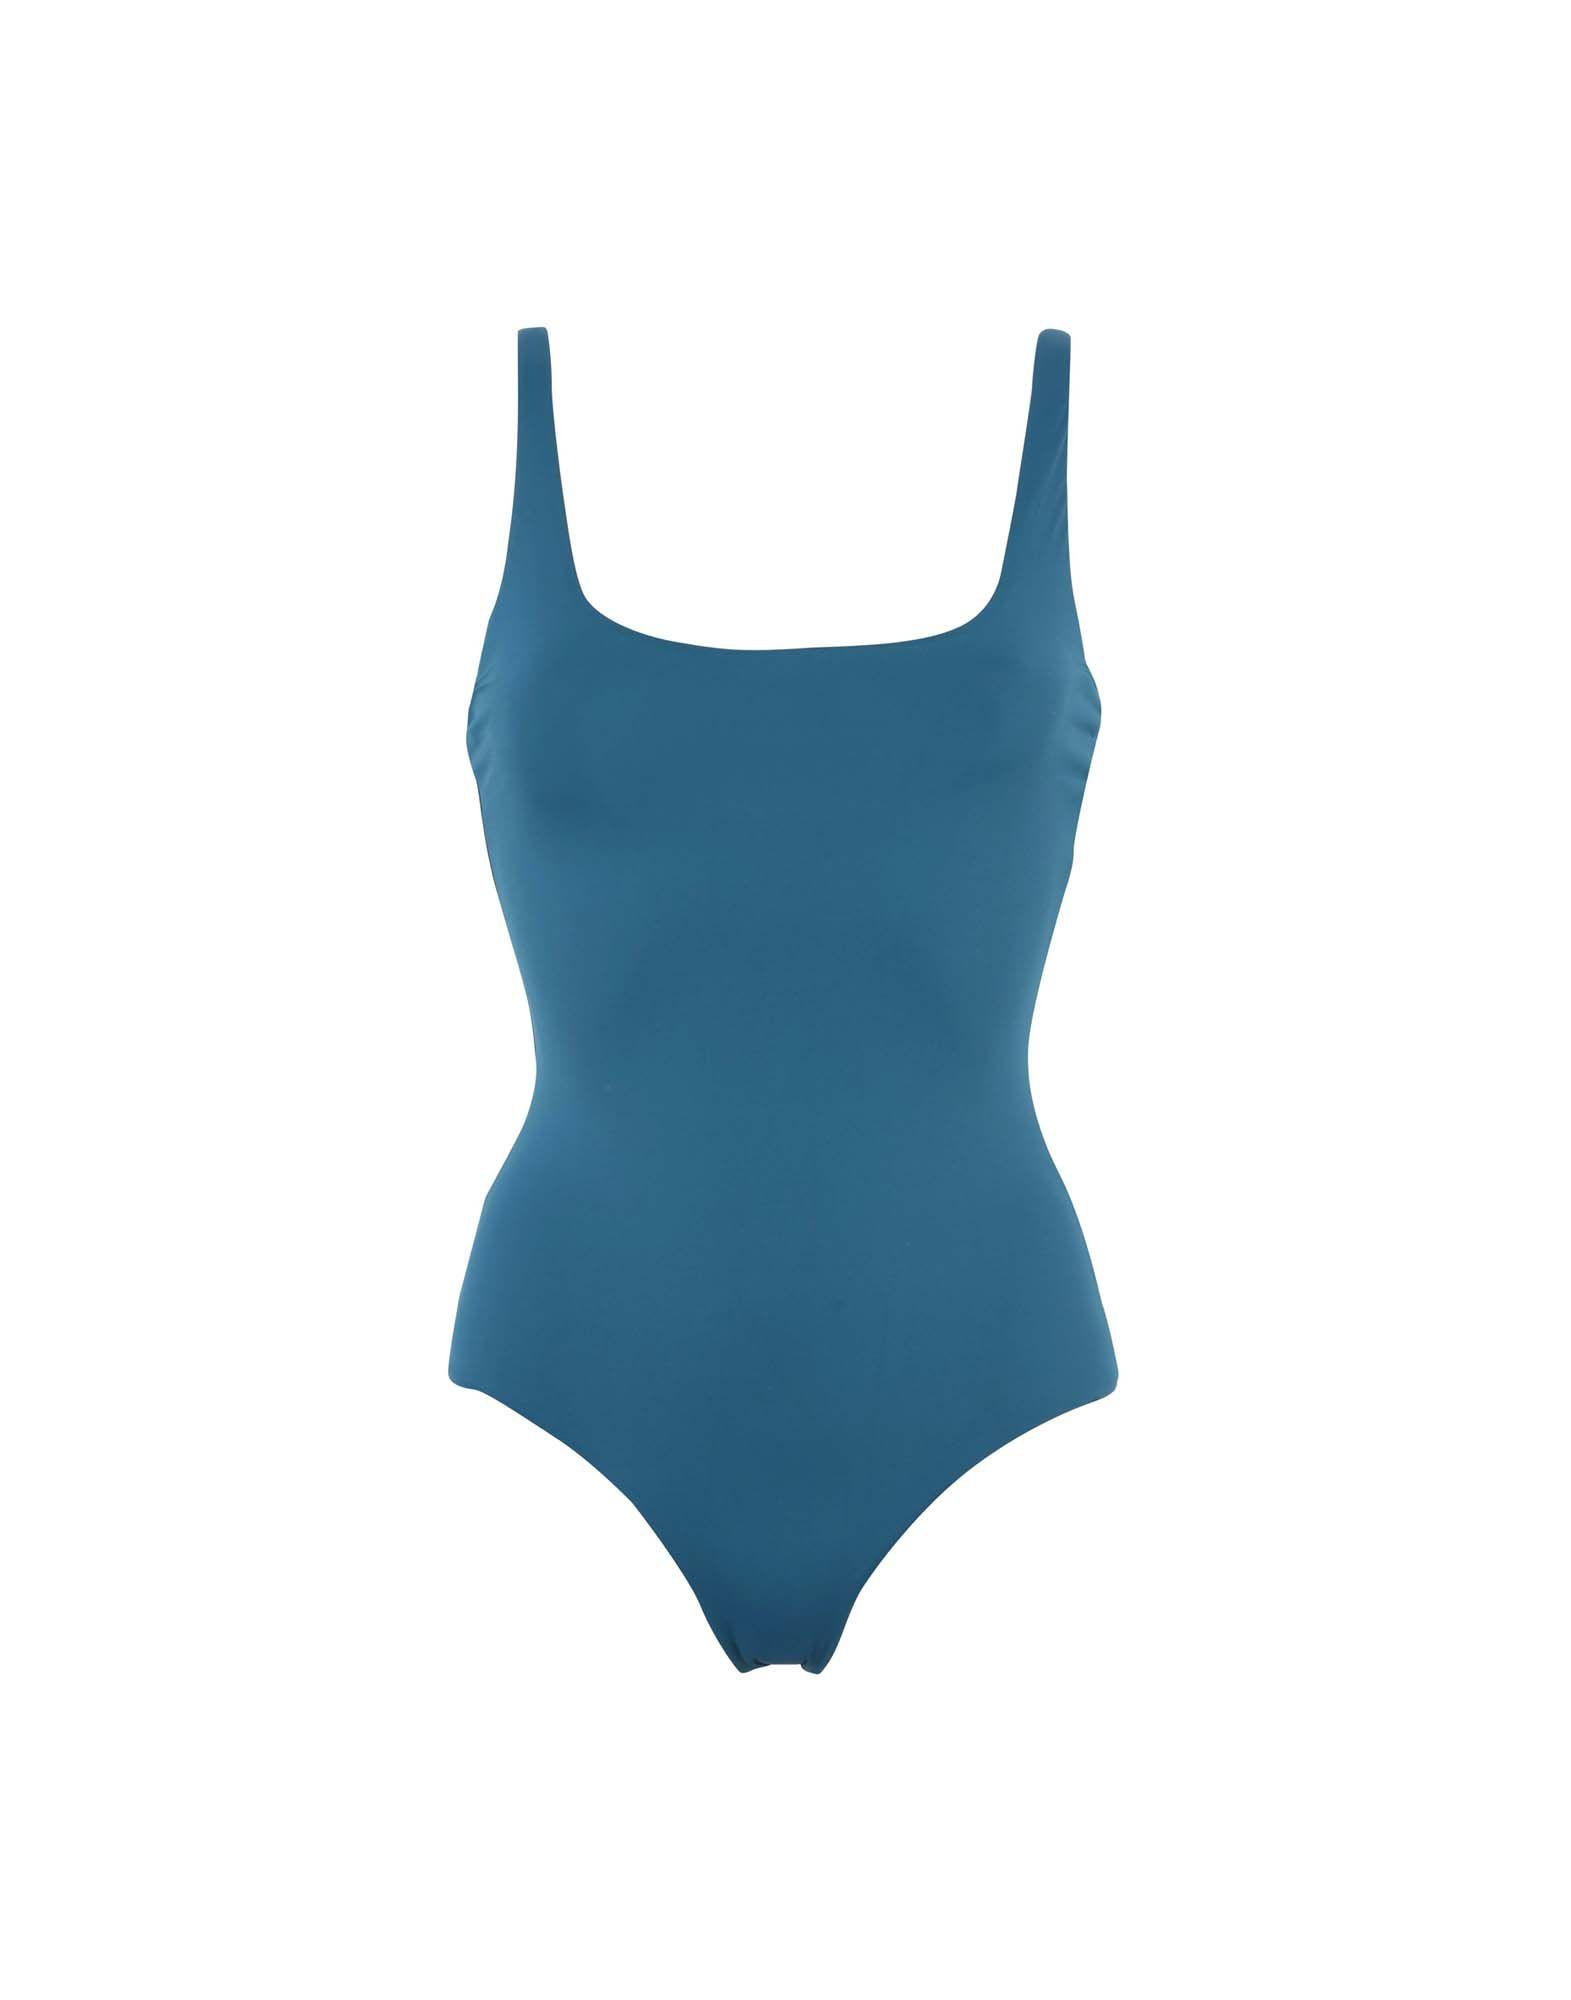 b0378ab5a66 Albertine One-Piece Swimsuits In Deep Jade | ModeSens